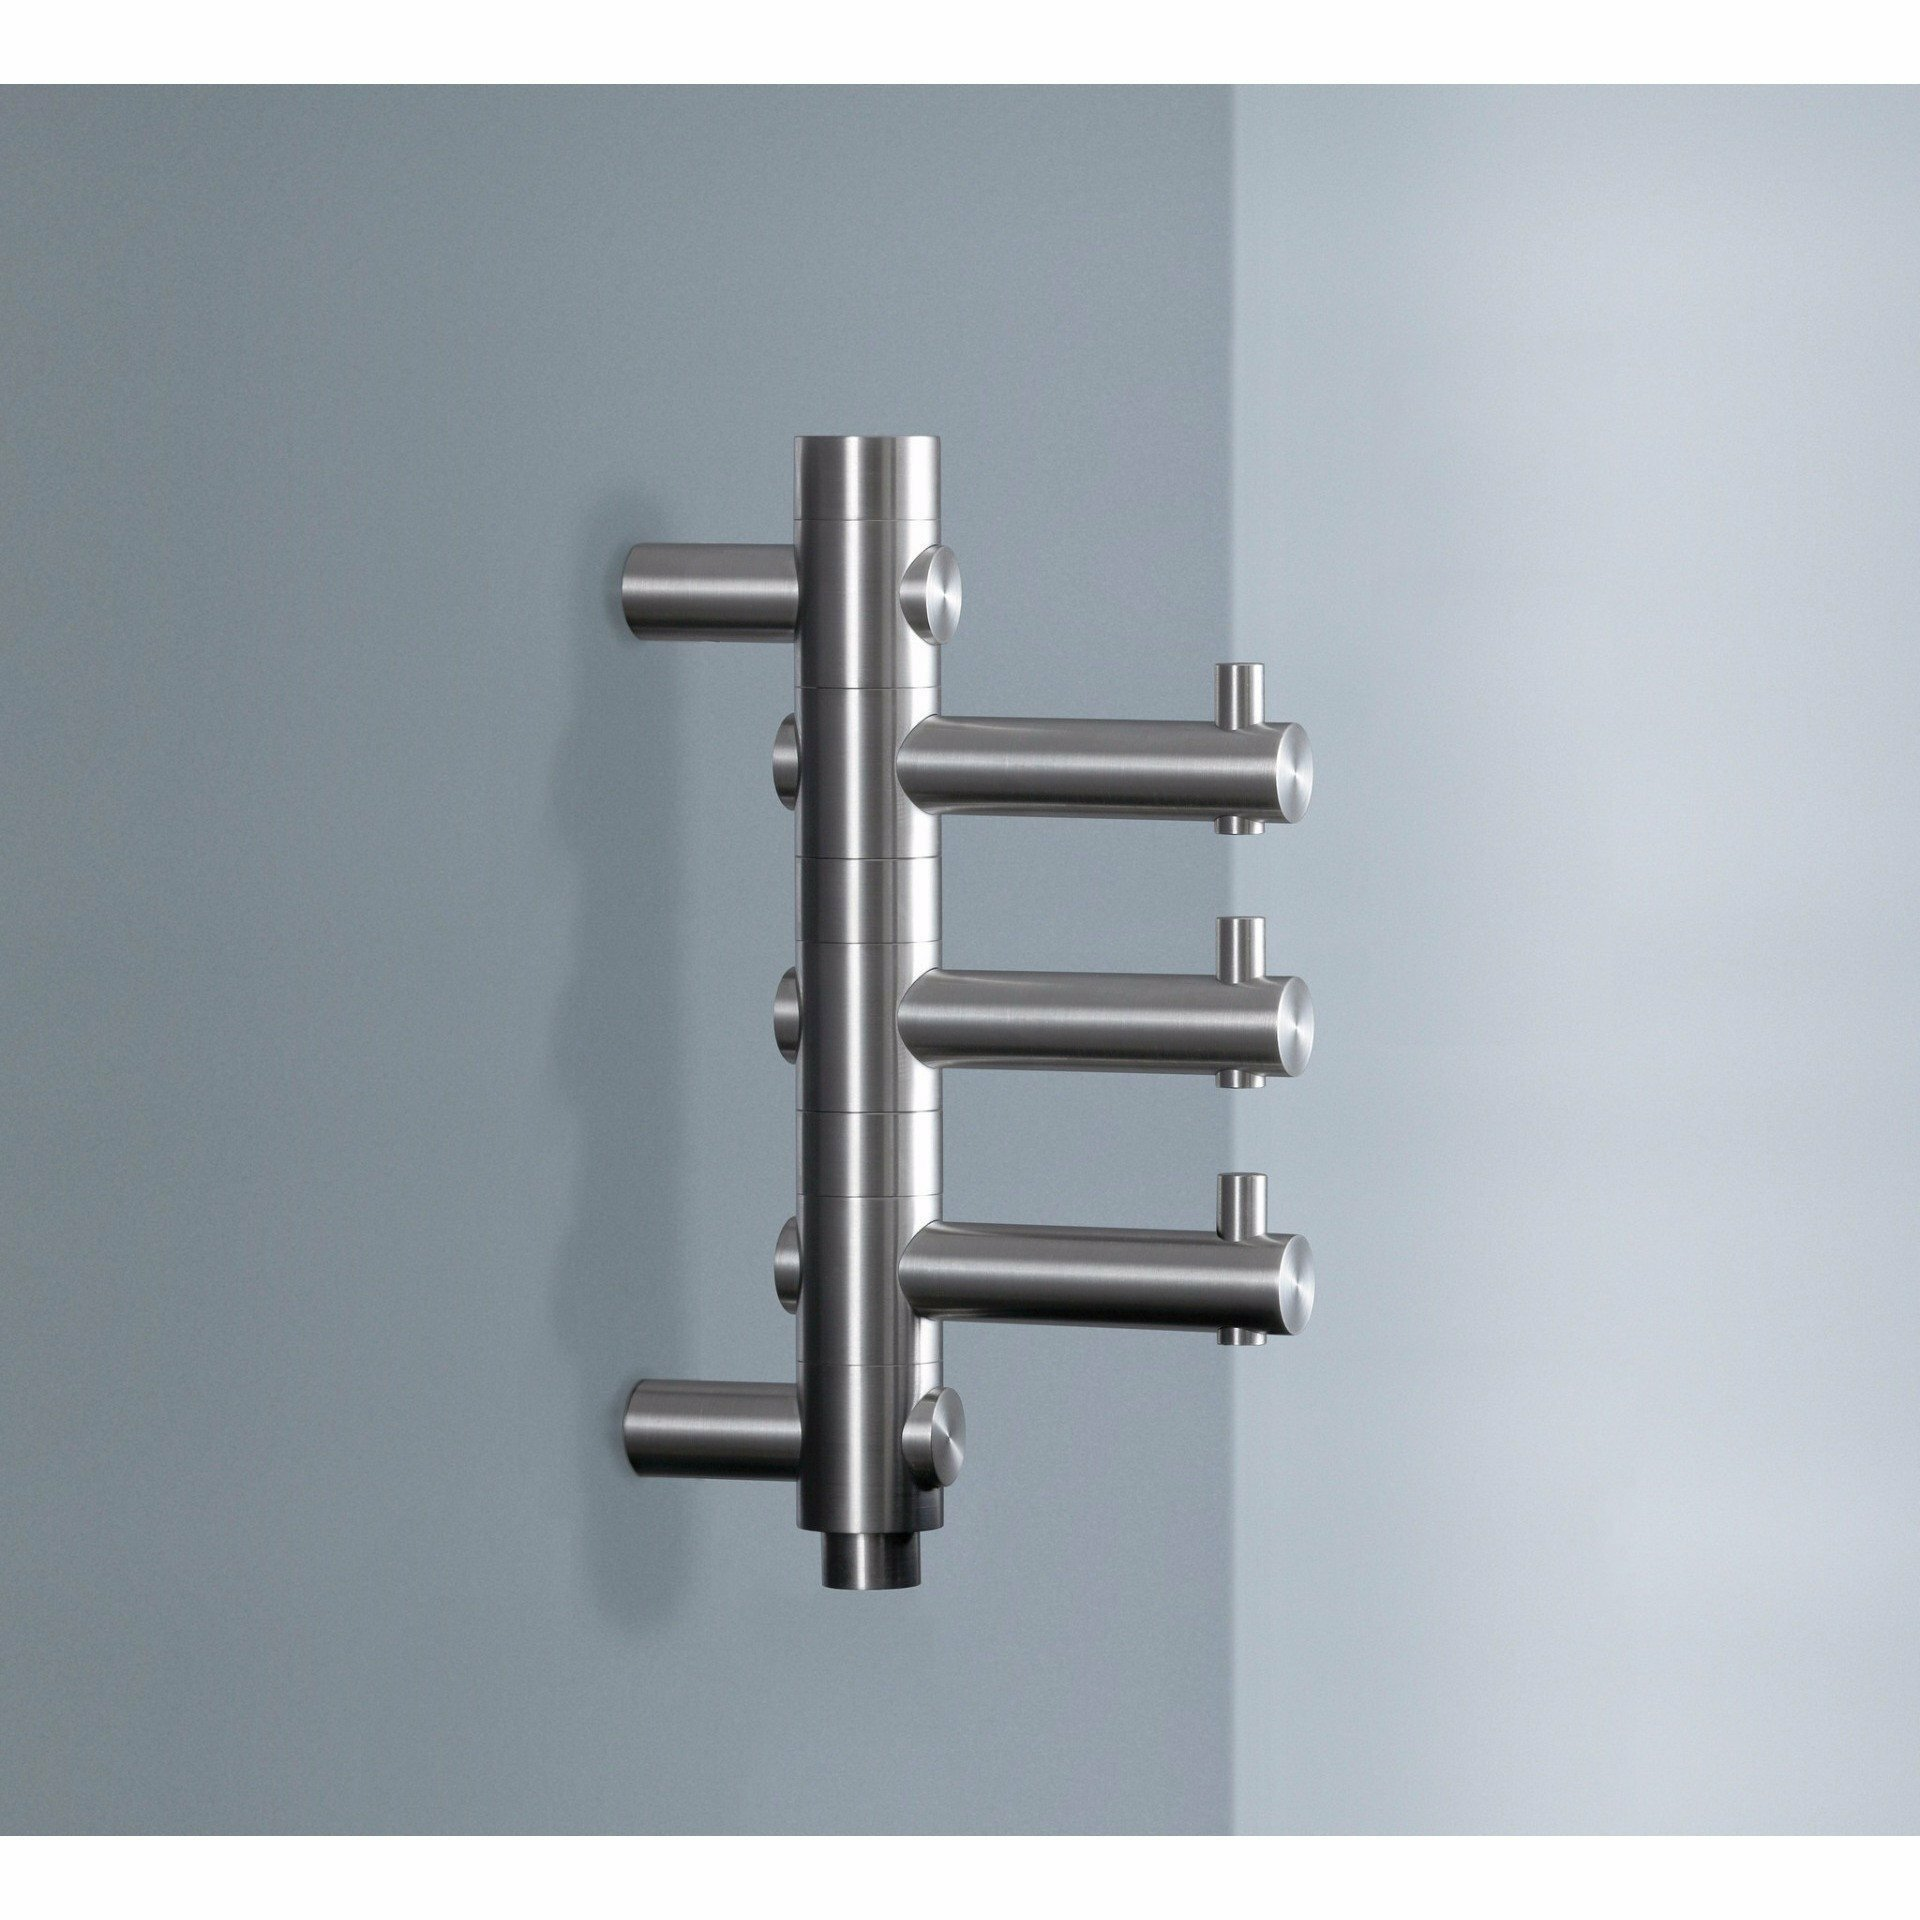 Agm Home Store Stainless Steel Wall Mounted Robe Hook Wayfair